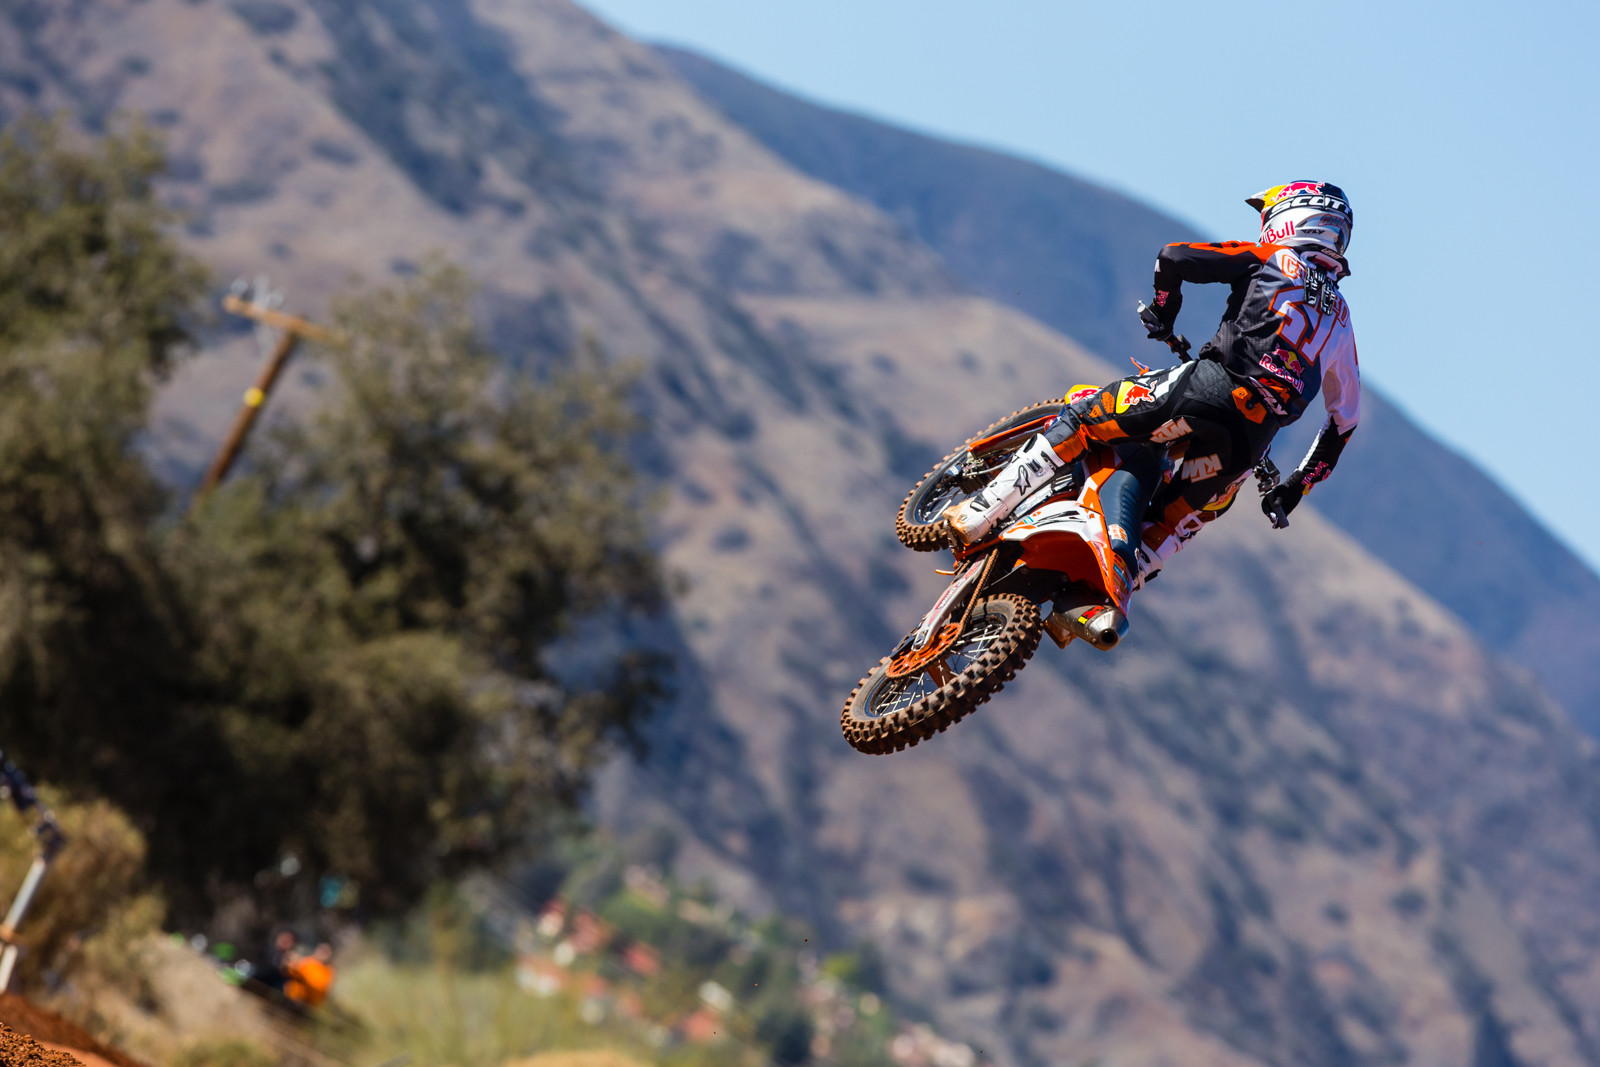 Trey Canard - 2017 KTM Supercross Factory and Support Team Intro - Motocross Pictures - Vital MX